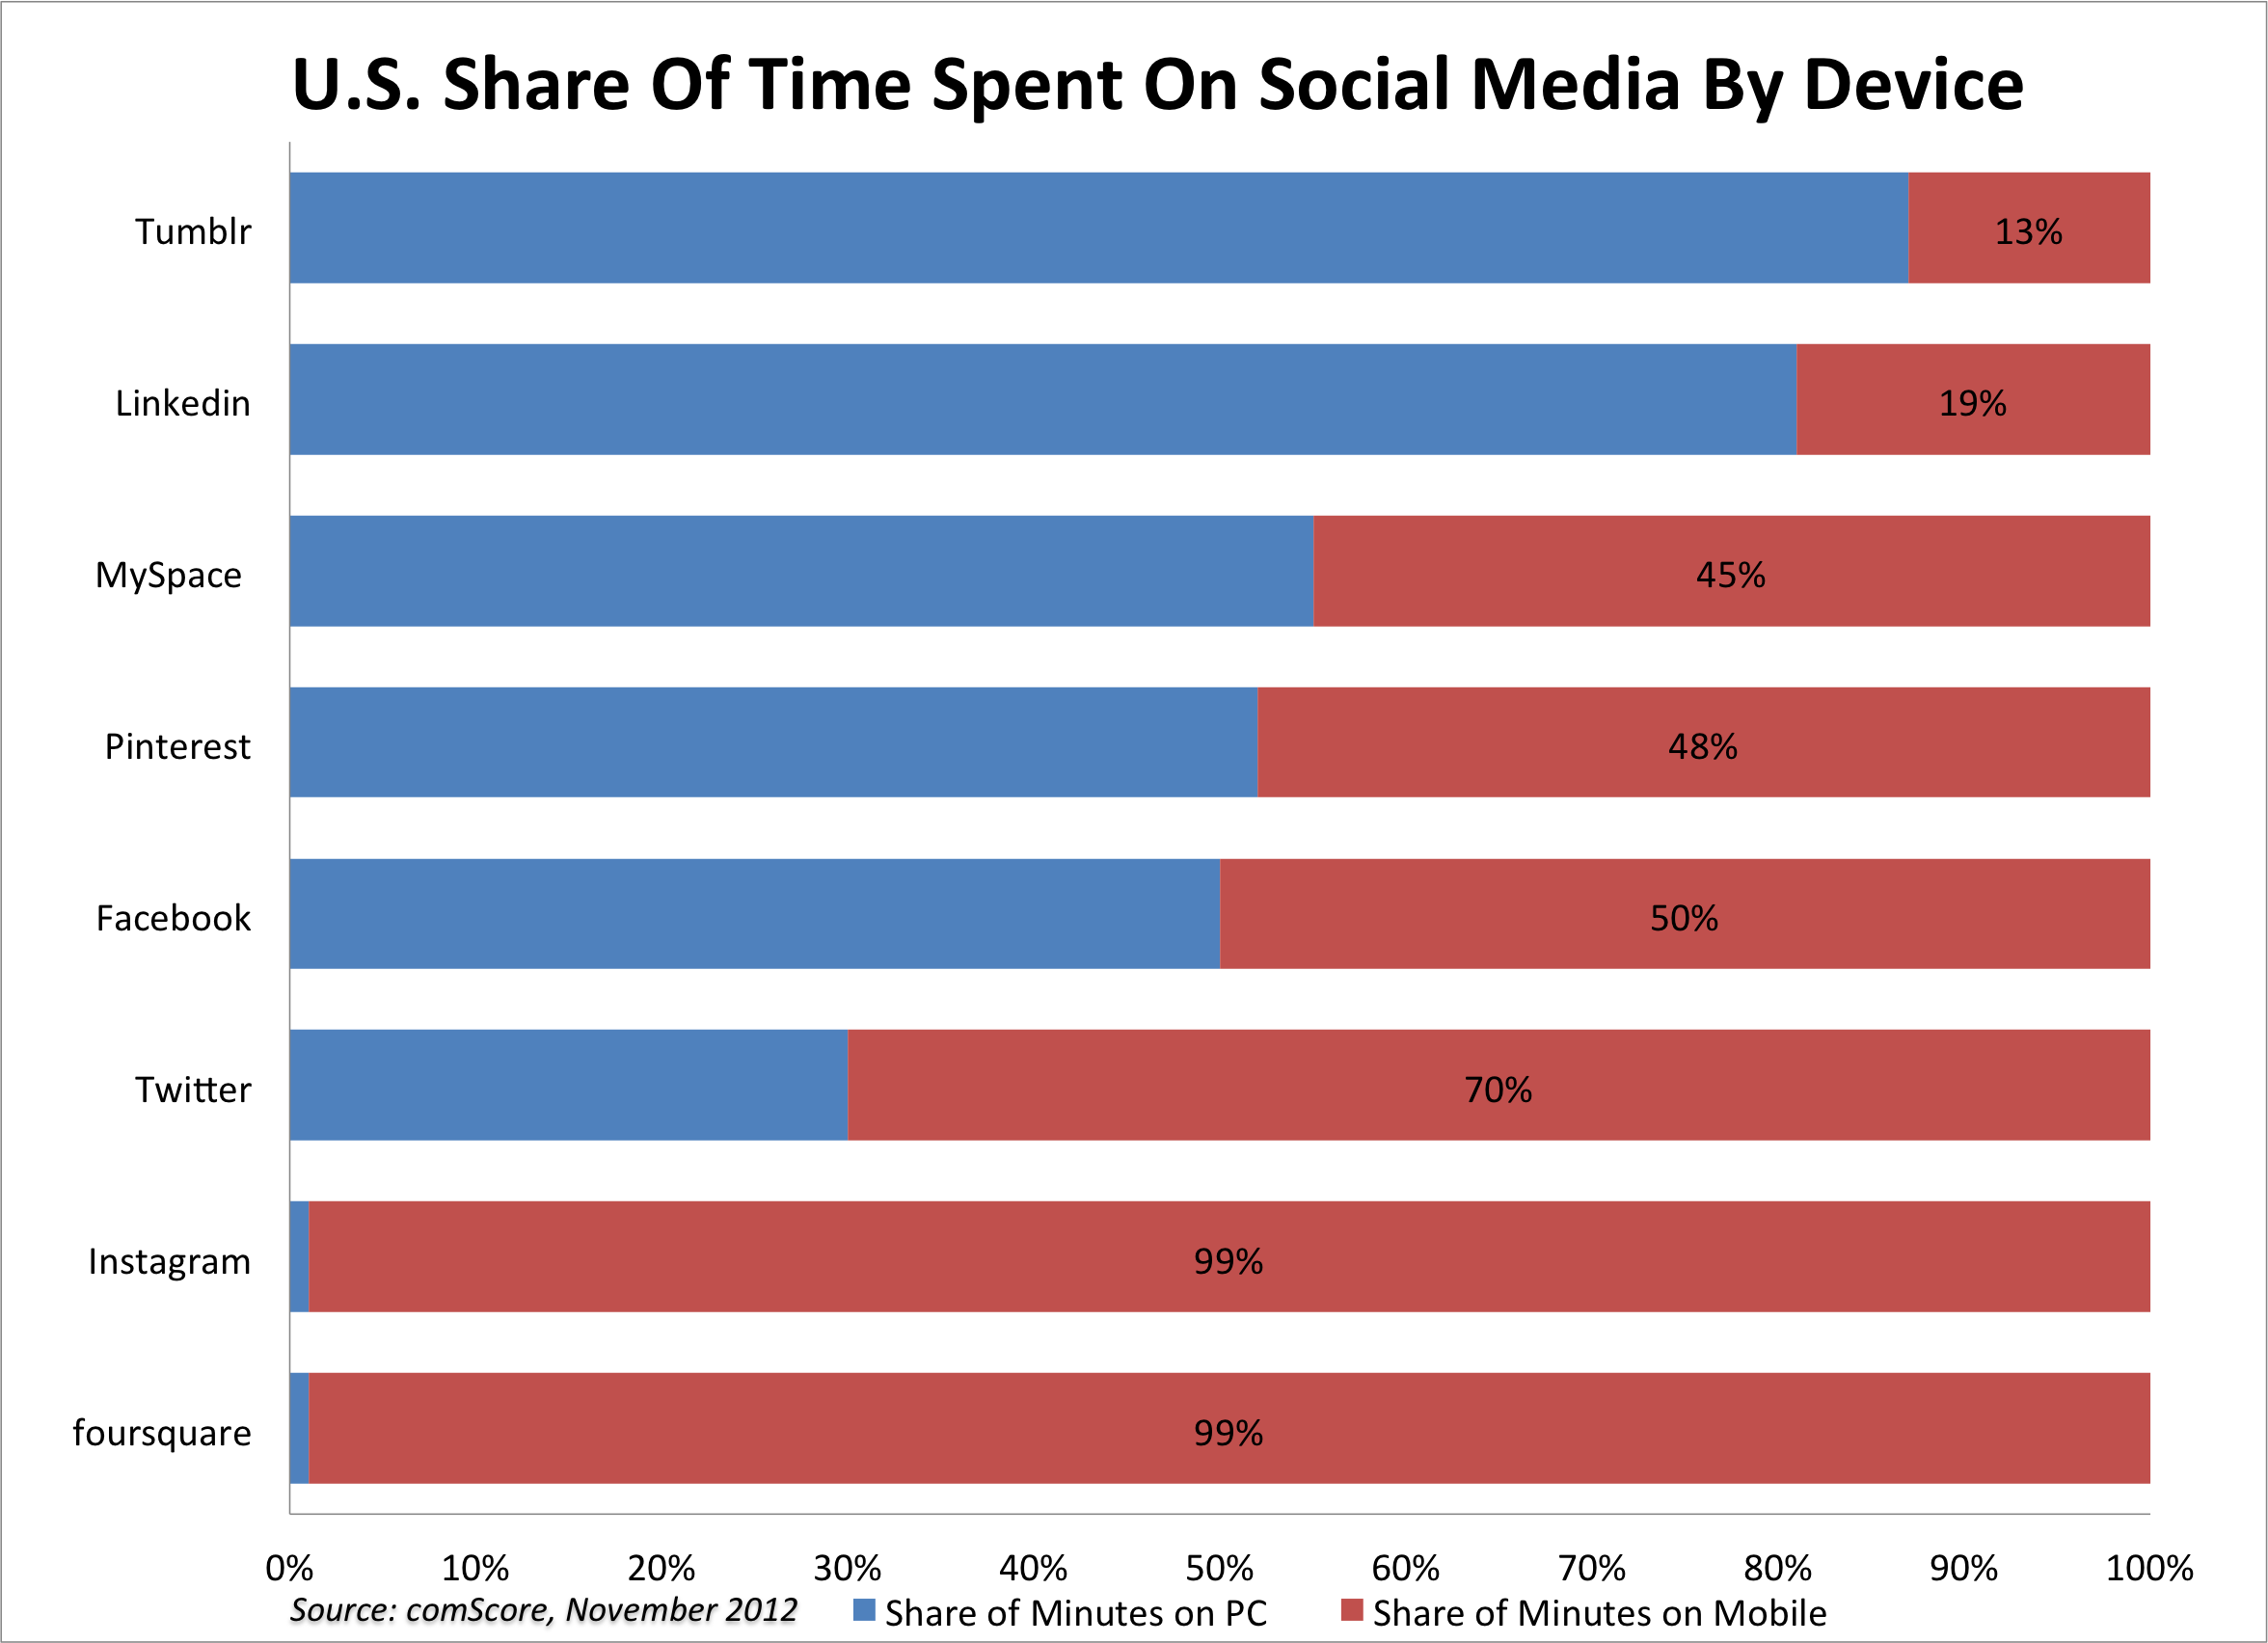 u.s. share of time spent by device-1